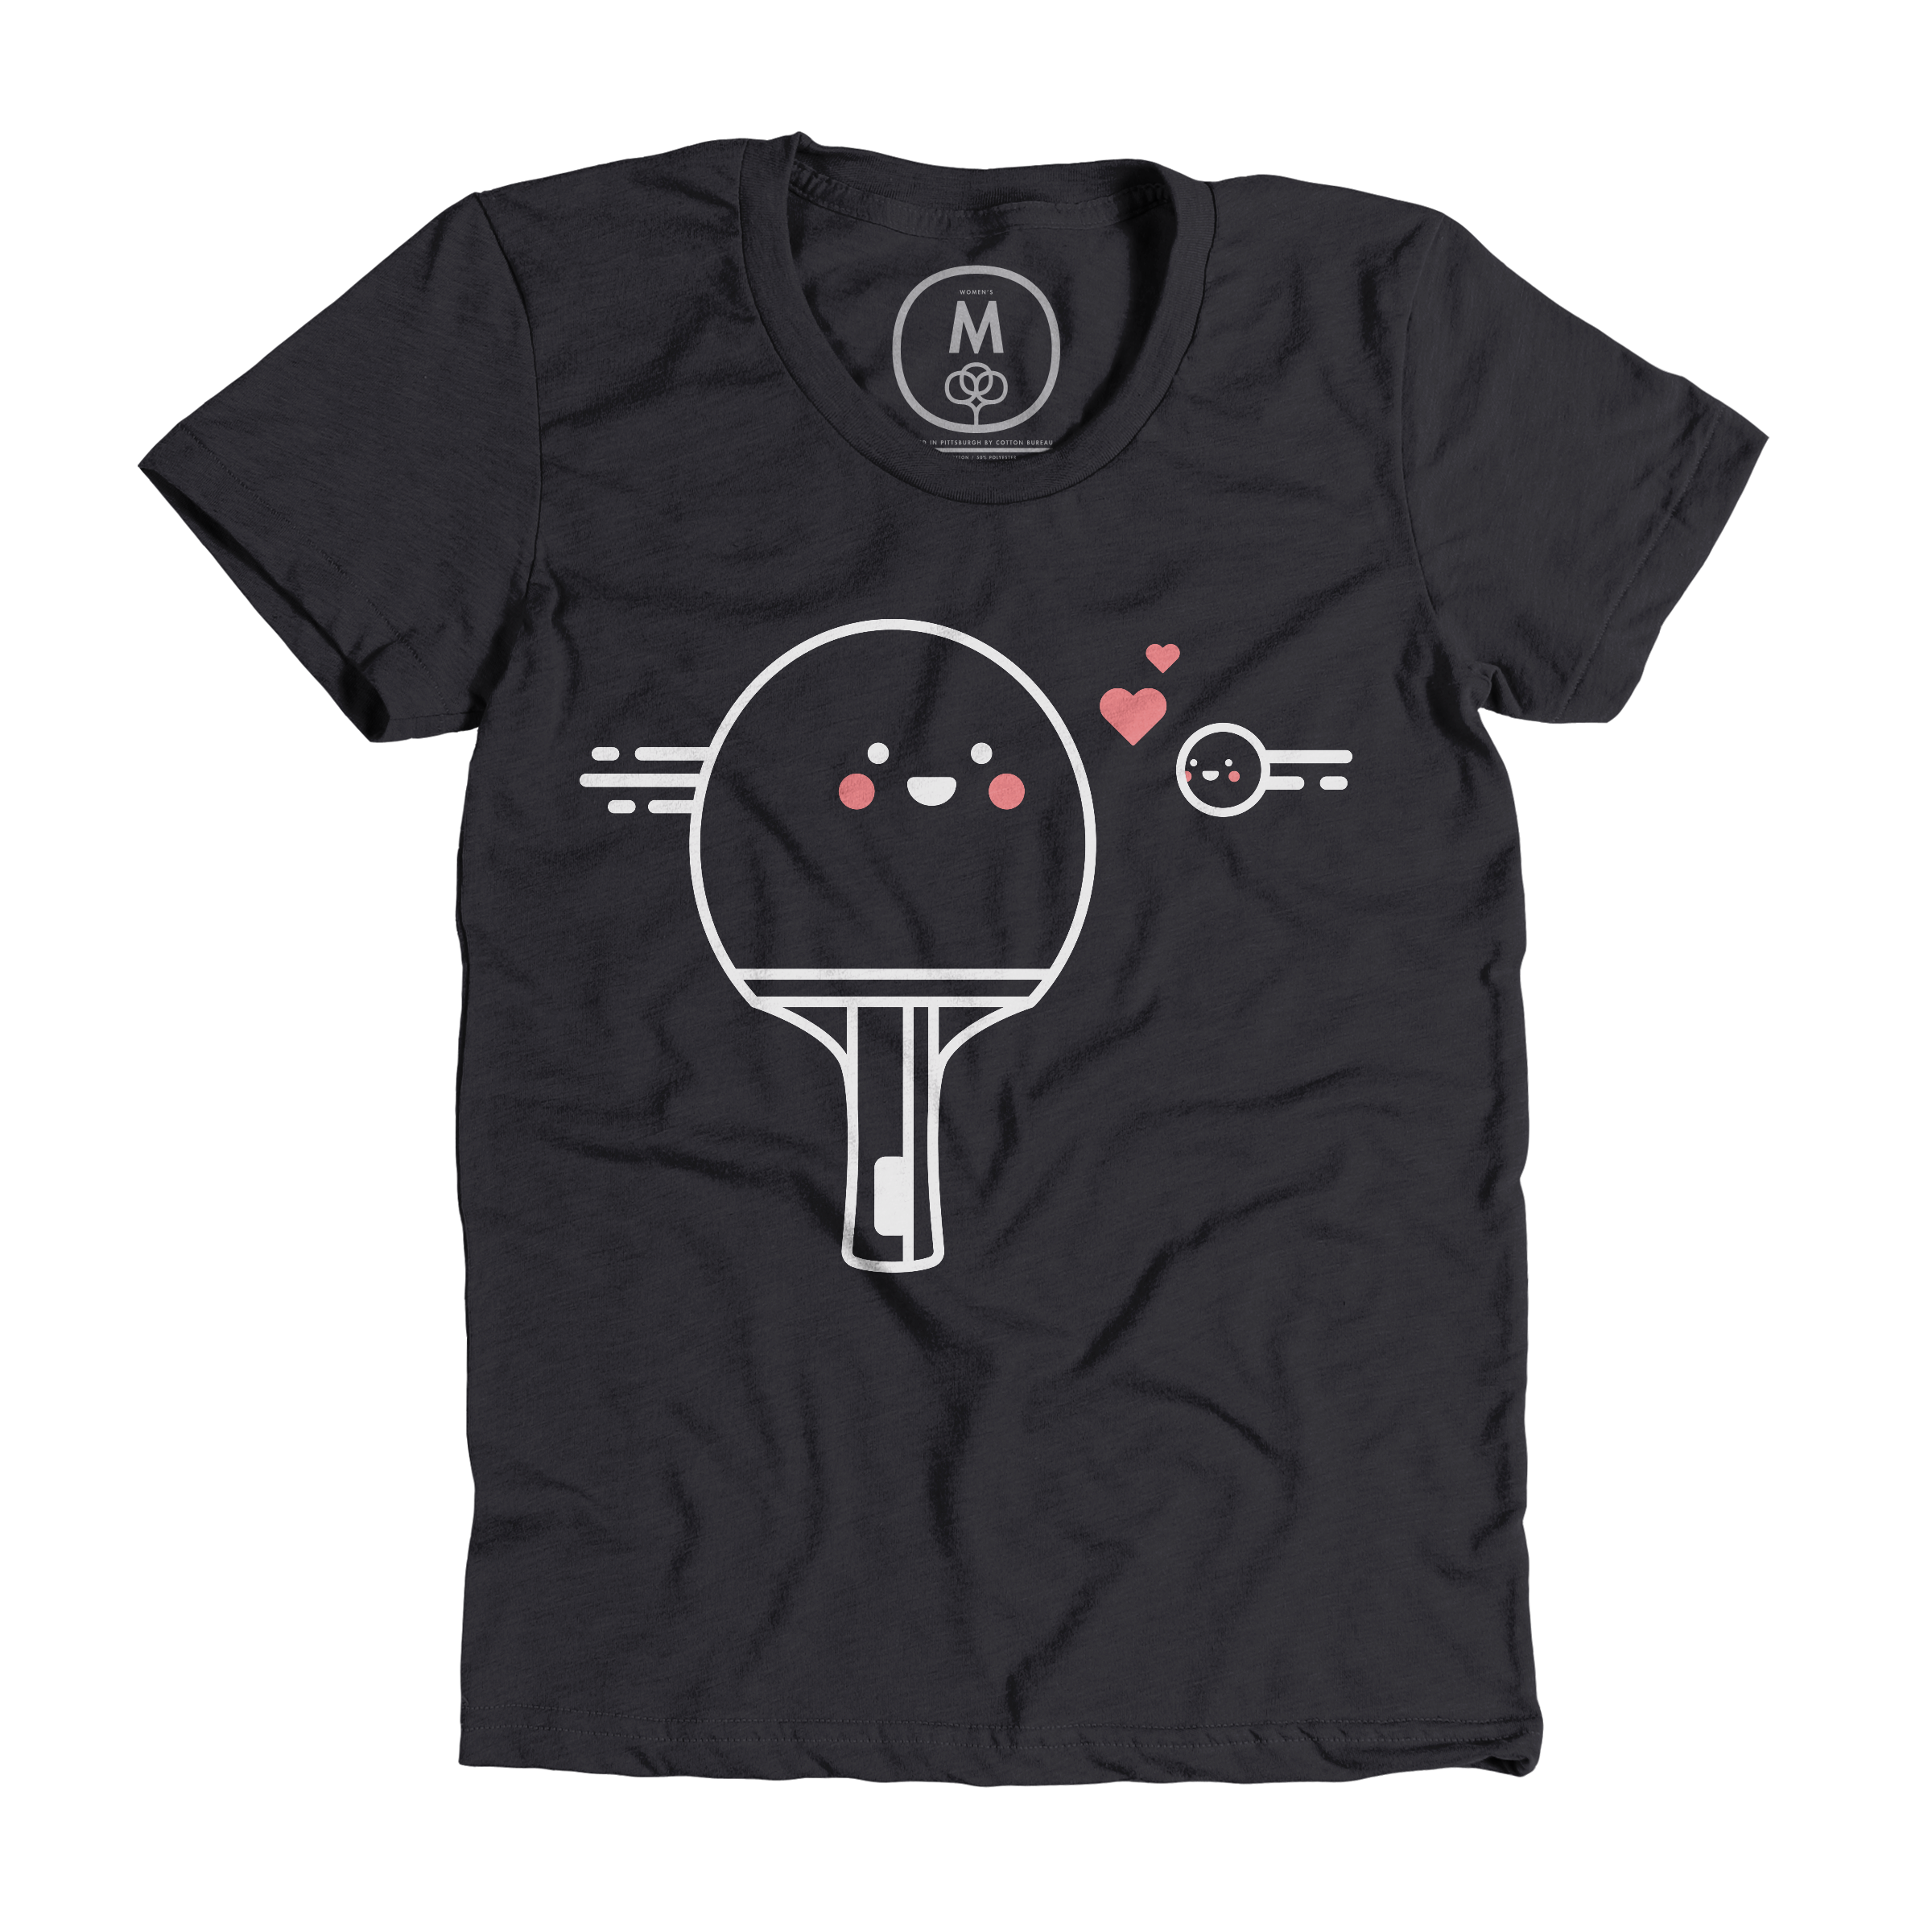 Love At First Sight Charcoal (Women's)